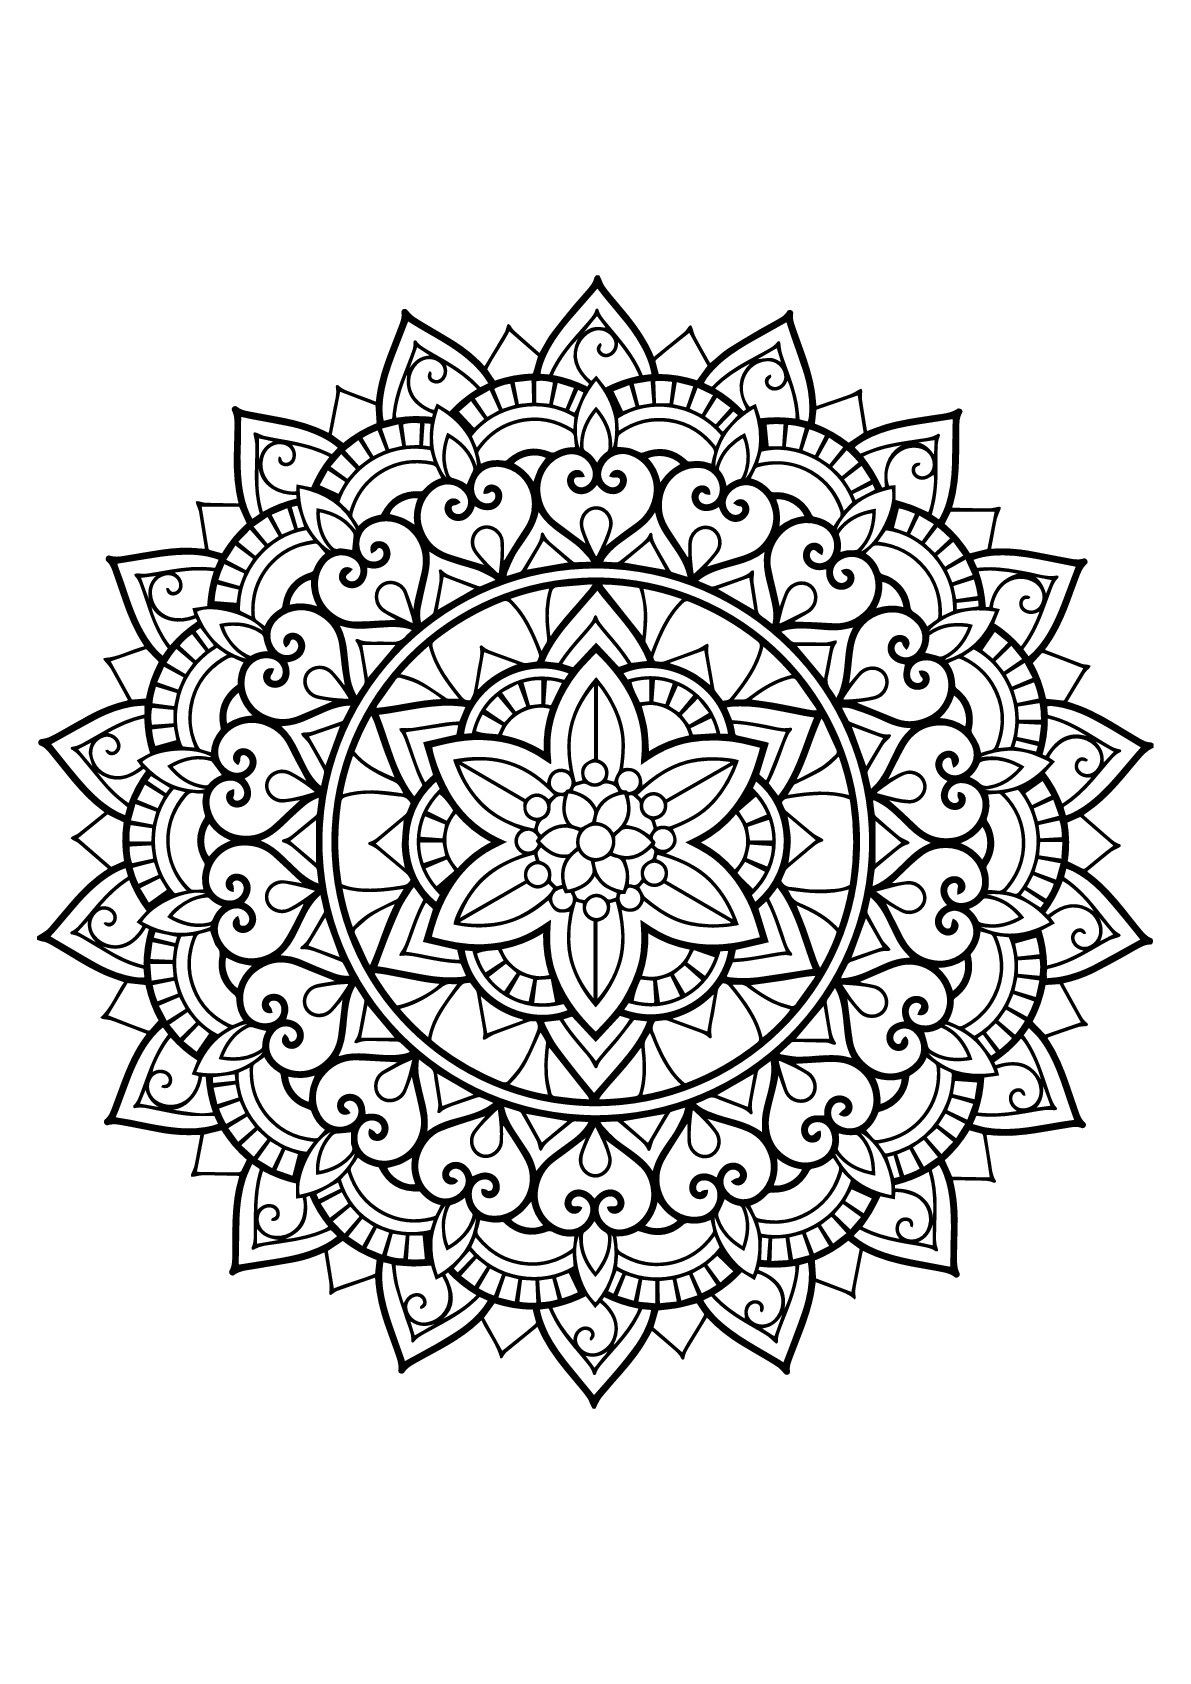 Mandala from free coloring books for adults 29 - M&alas ...   coloring books for adults mandala